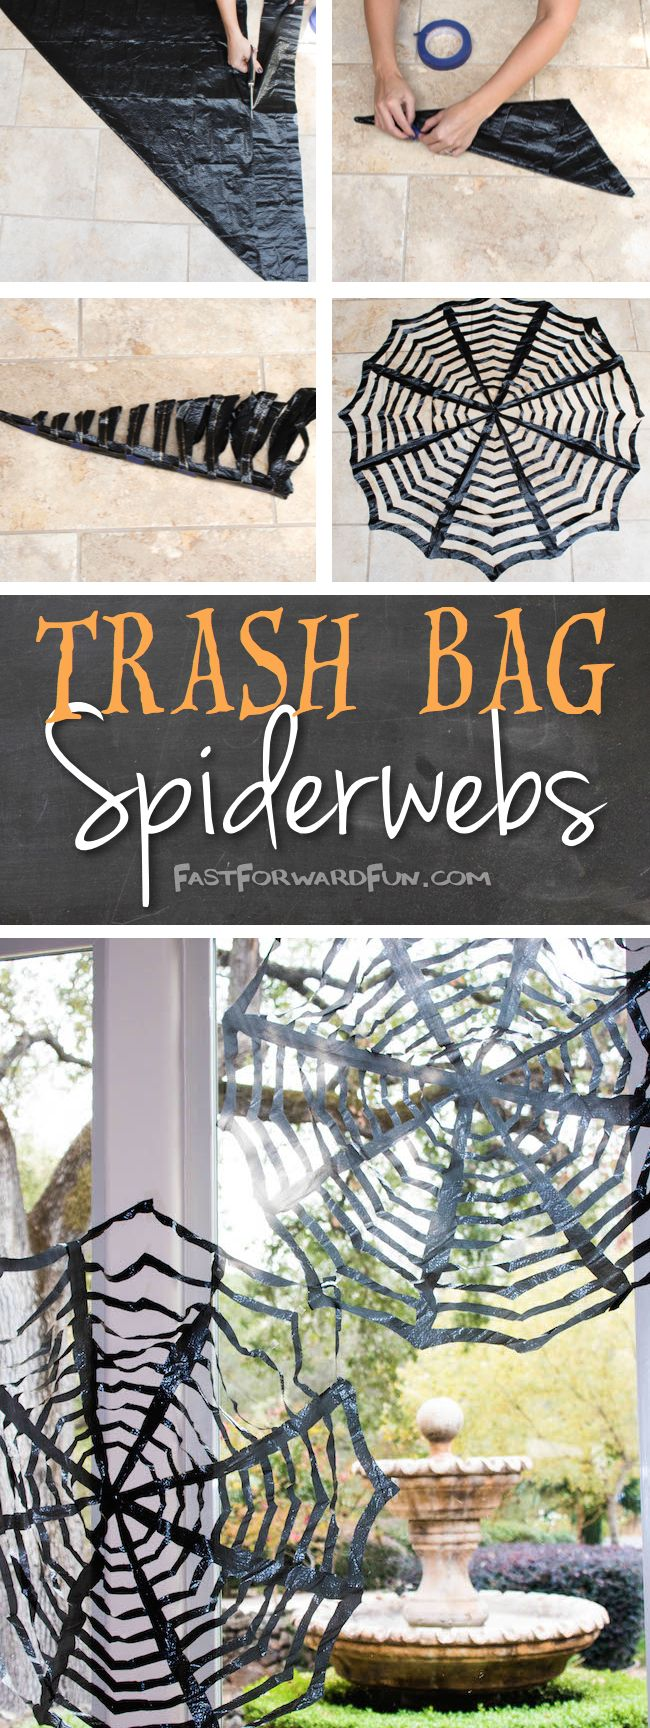 Easy Diy Trashbag Spiderweb Tutorial Fun Video And Lots Of Step